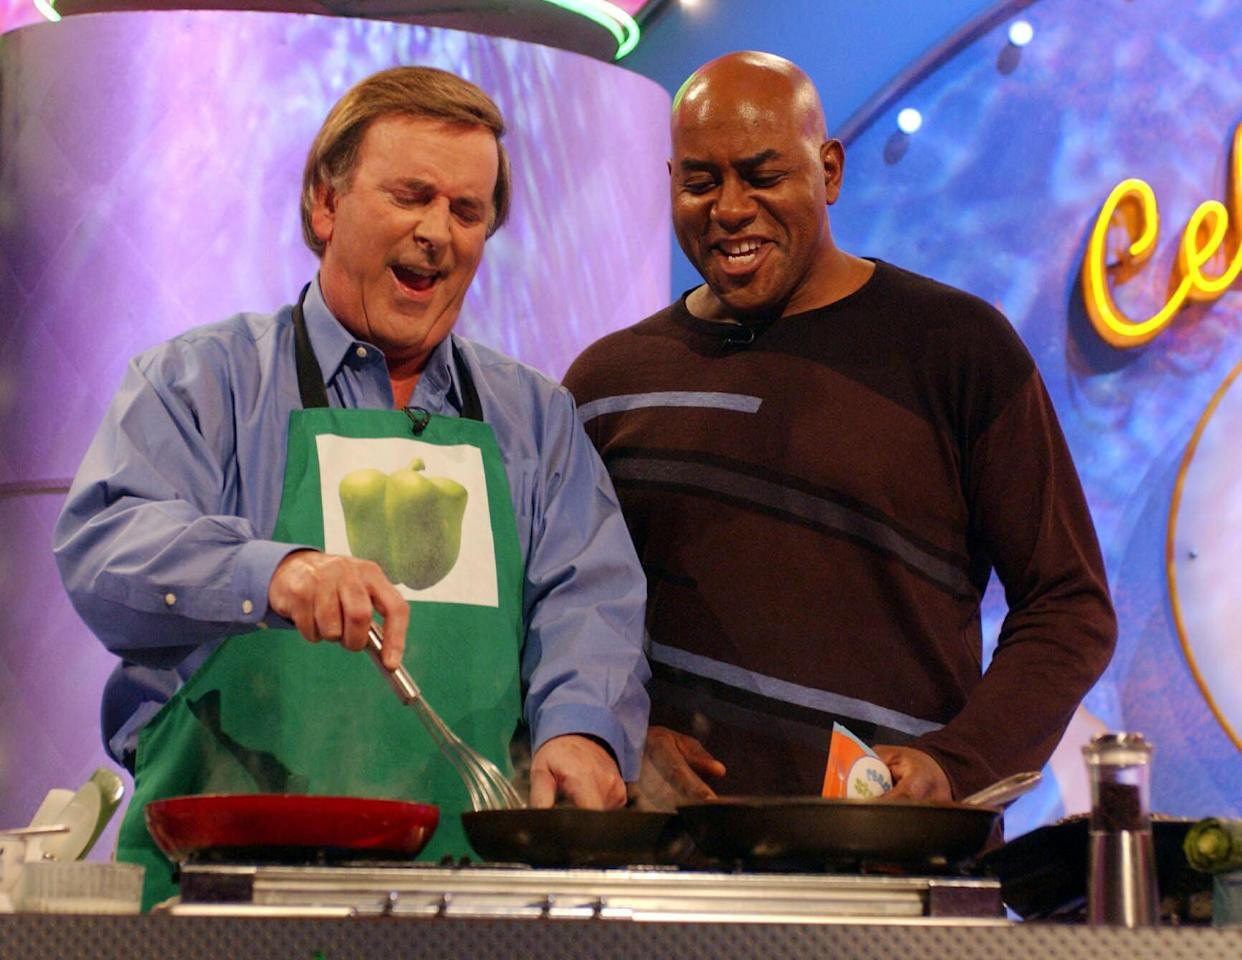 TV chef Ainsley Harriott (right) talks to guest Terry Wogan during a special edition of 'Ready Steady Cook' in aid of 'Children In Need' at Capital Studios, south west London.